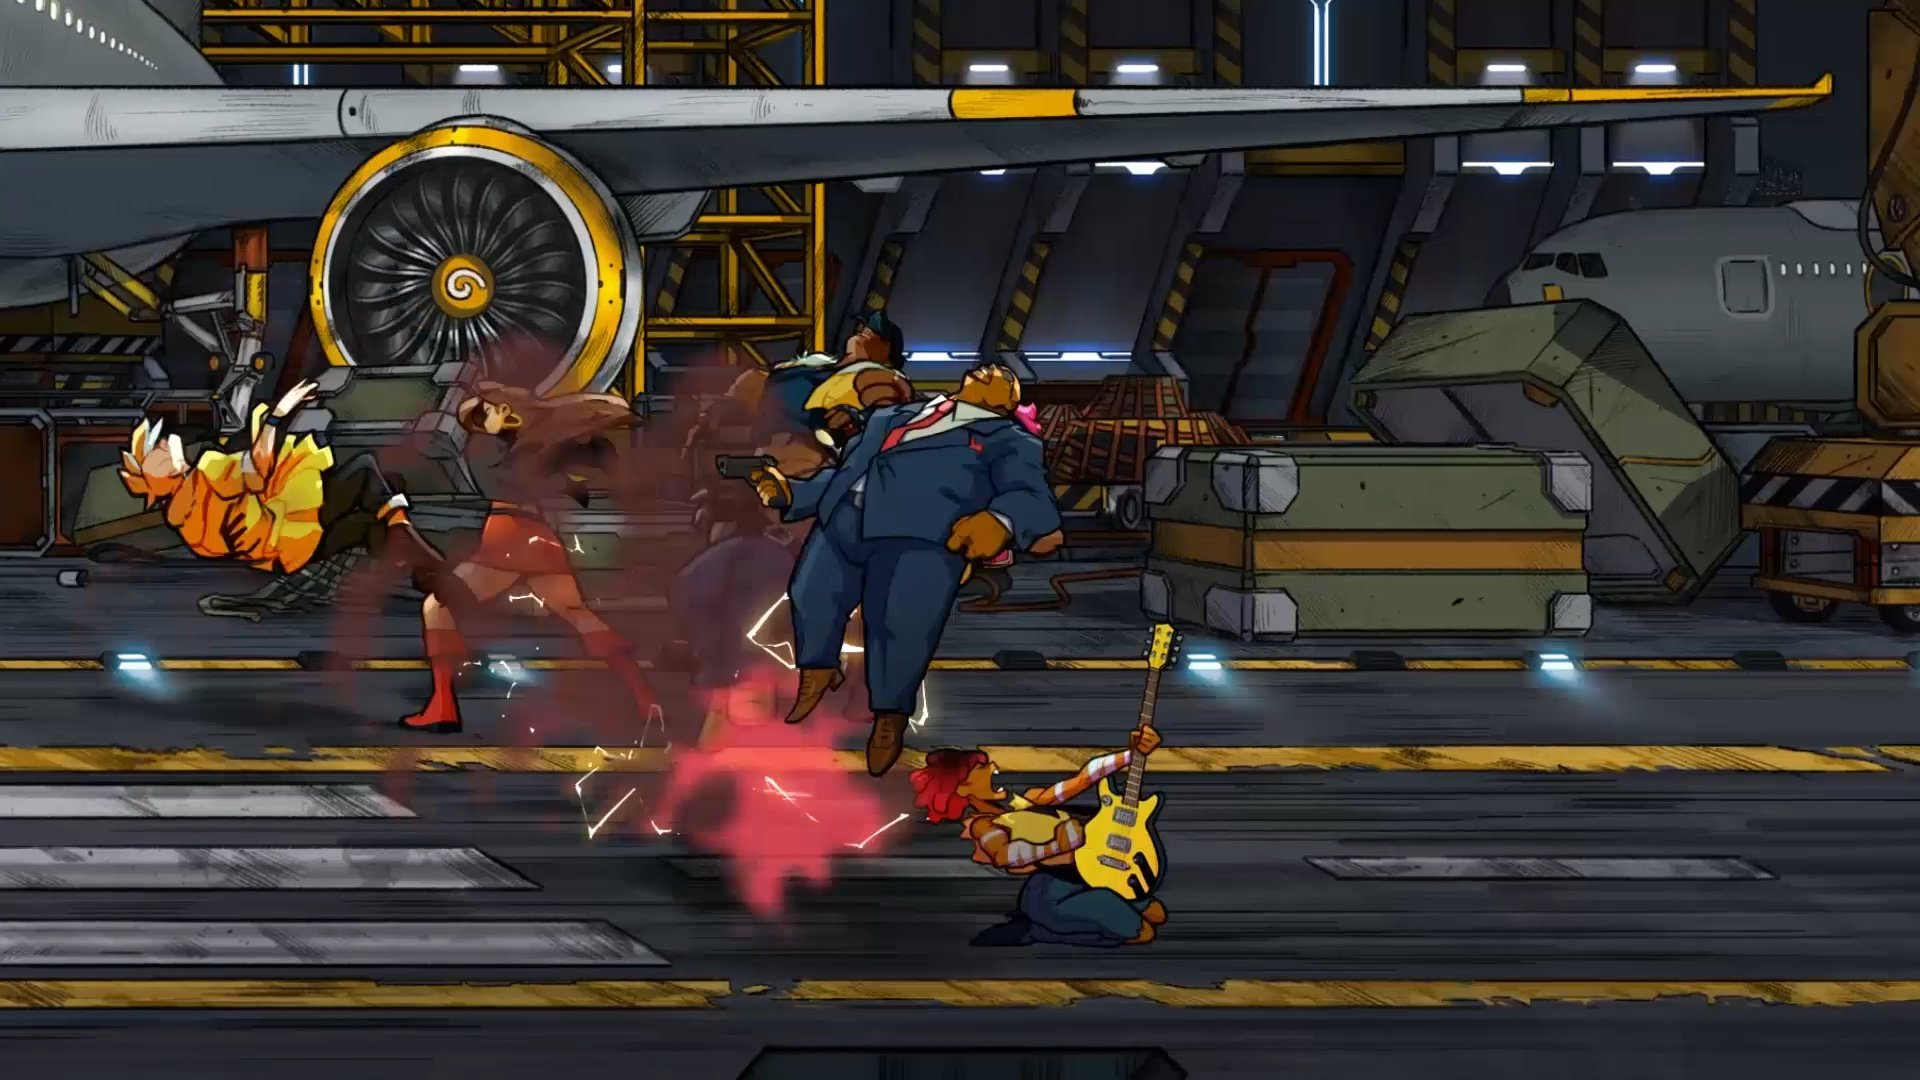 Yuzo Koshiro Thinks You're Going To Love Streets Of Rage 4